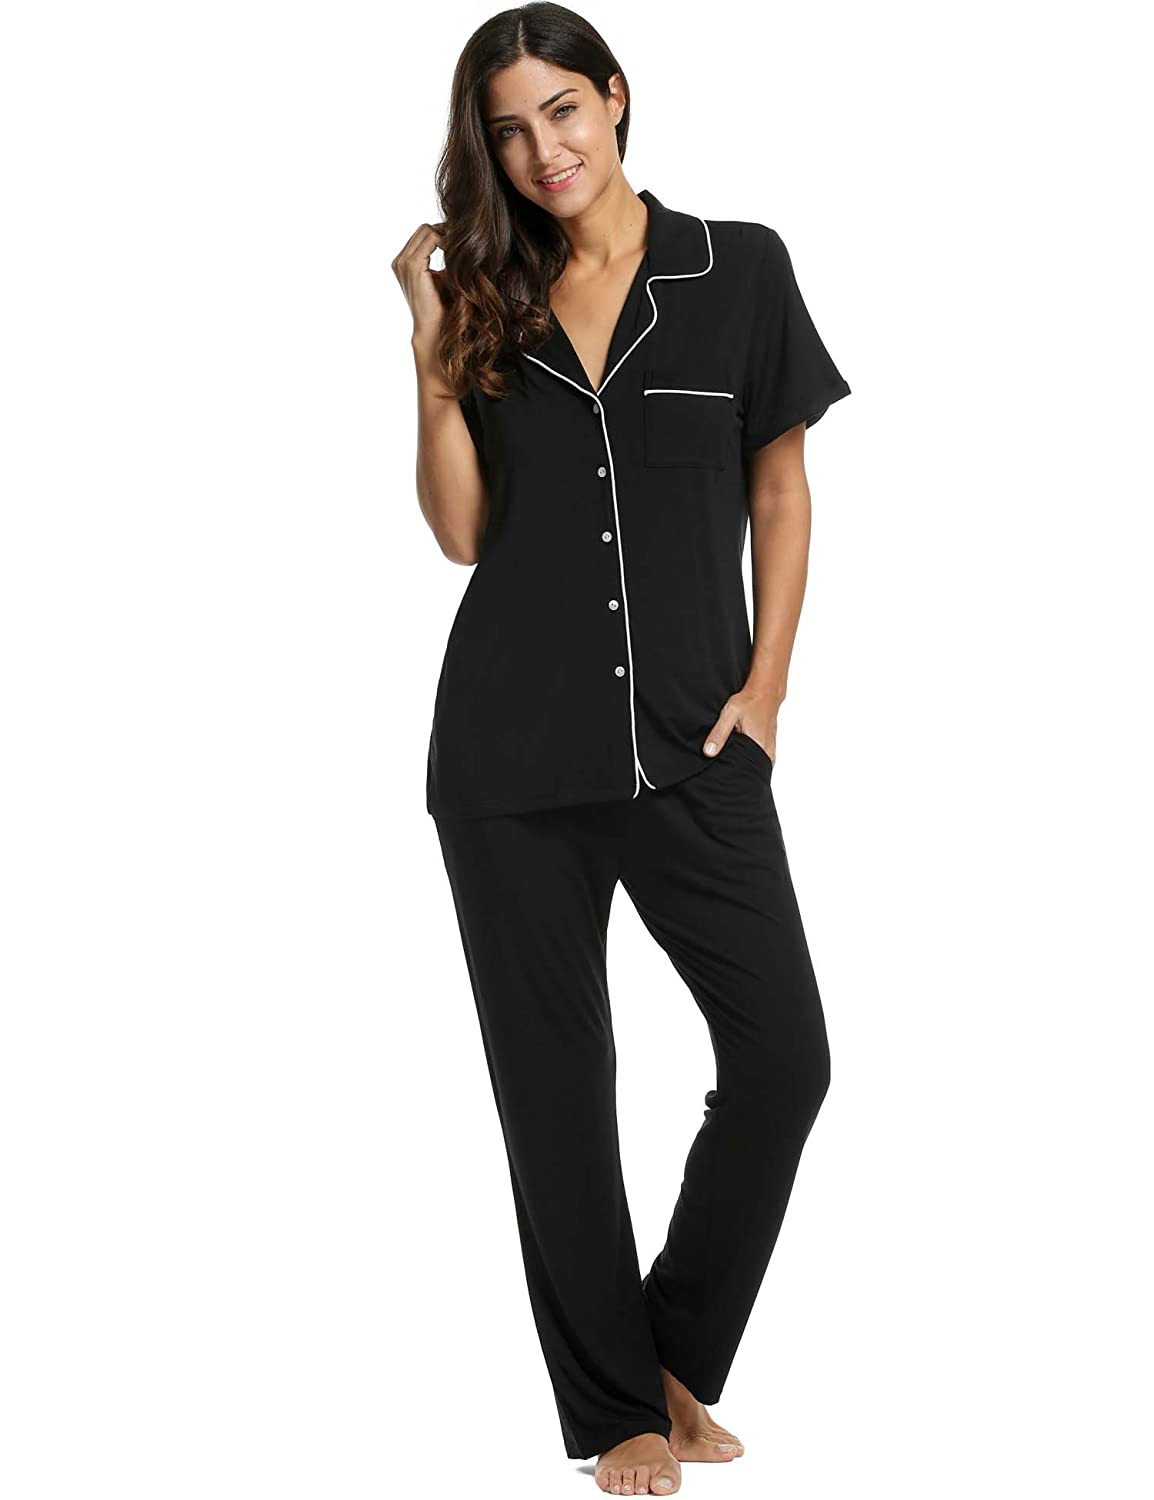 6695de2d98 Avidlove Womens Comfort Pajama Set Short-Sleeve with Long Pjs Pants Soft  Sleepwear at Amazon Women s Clothing store